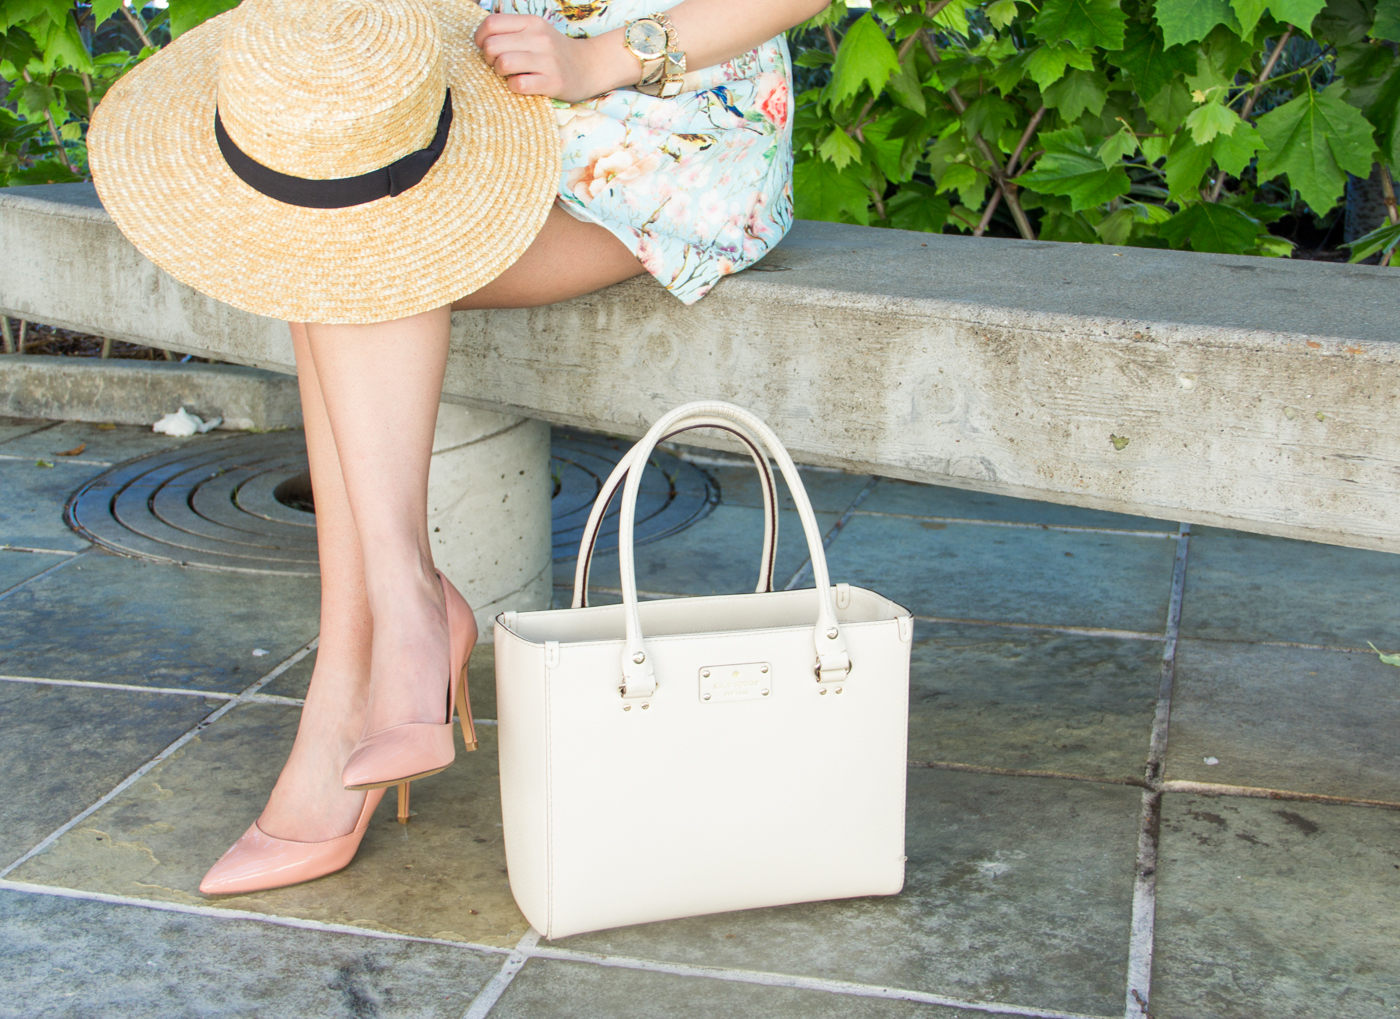 Straw hat & structured bag | via The Chic Diary